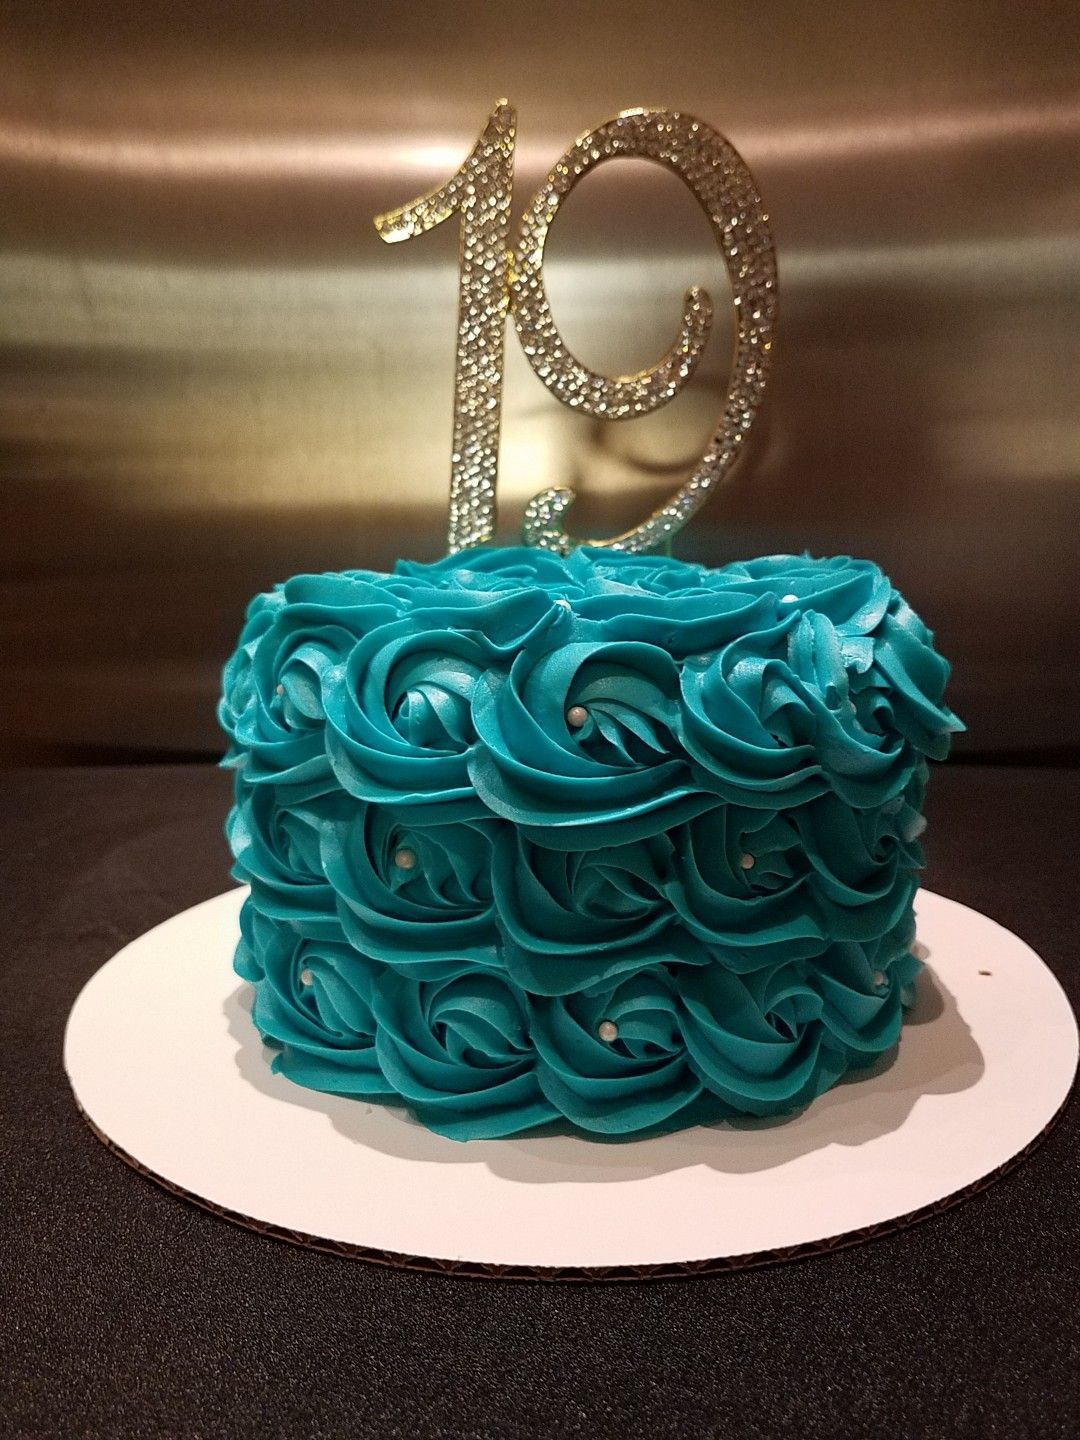 19th Birthday Cake Teal Rosettes Butter Cream Icing Girl In 2020